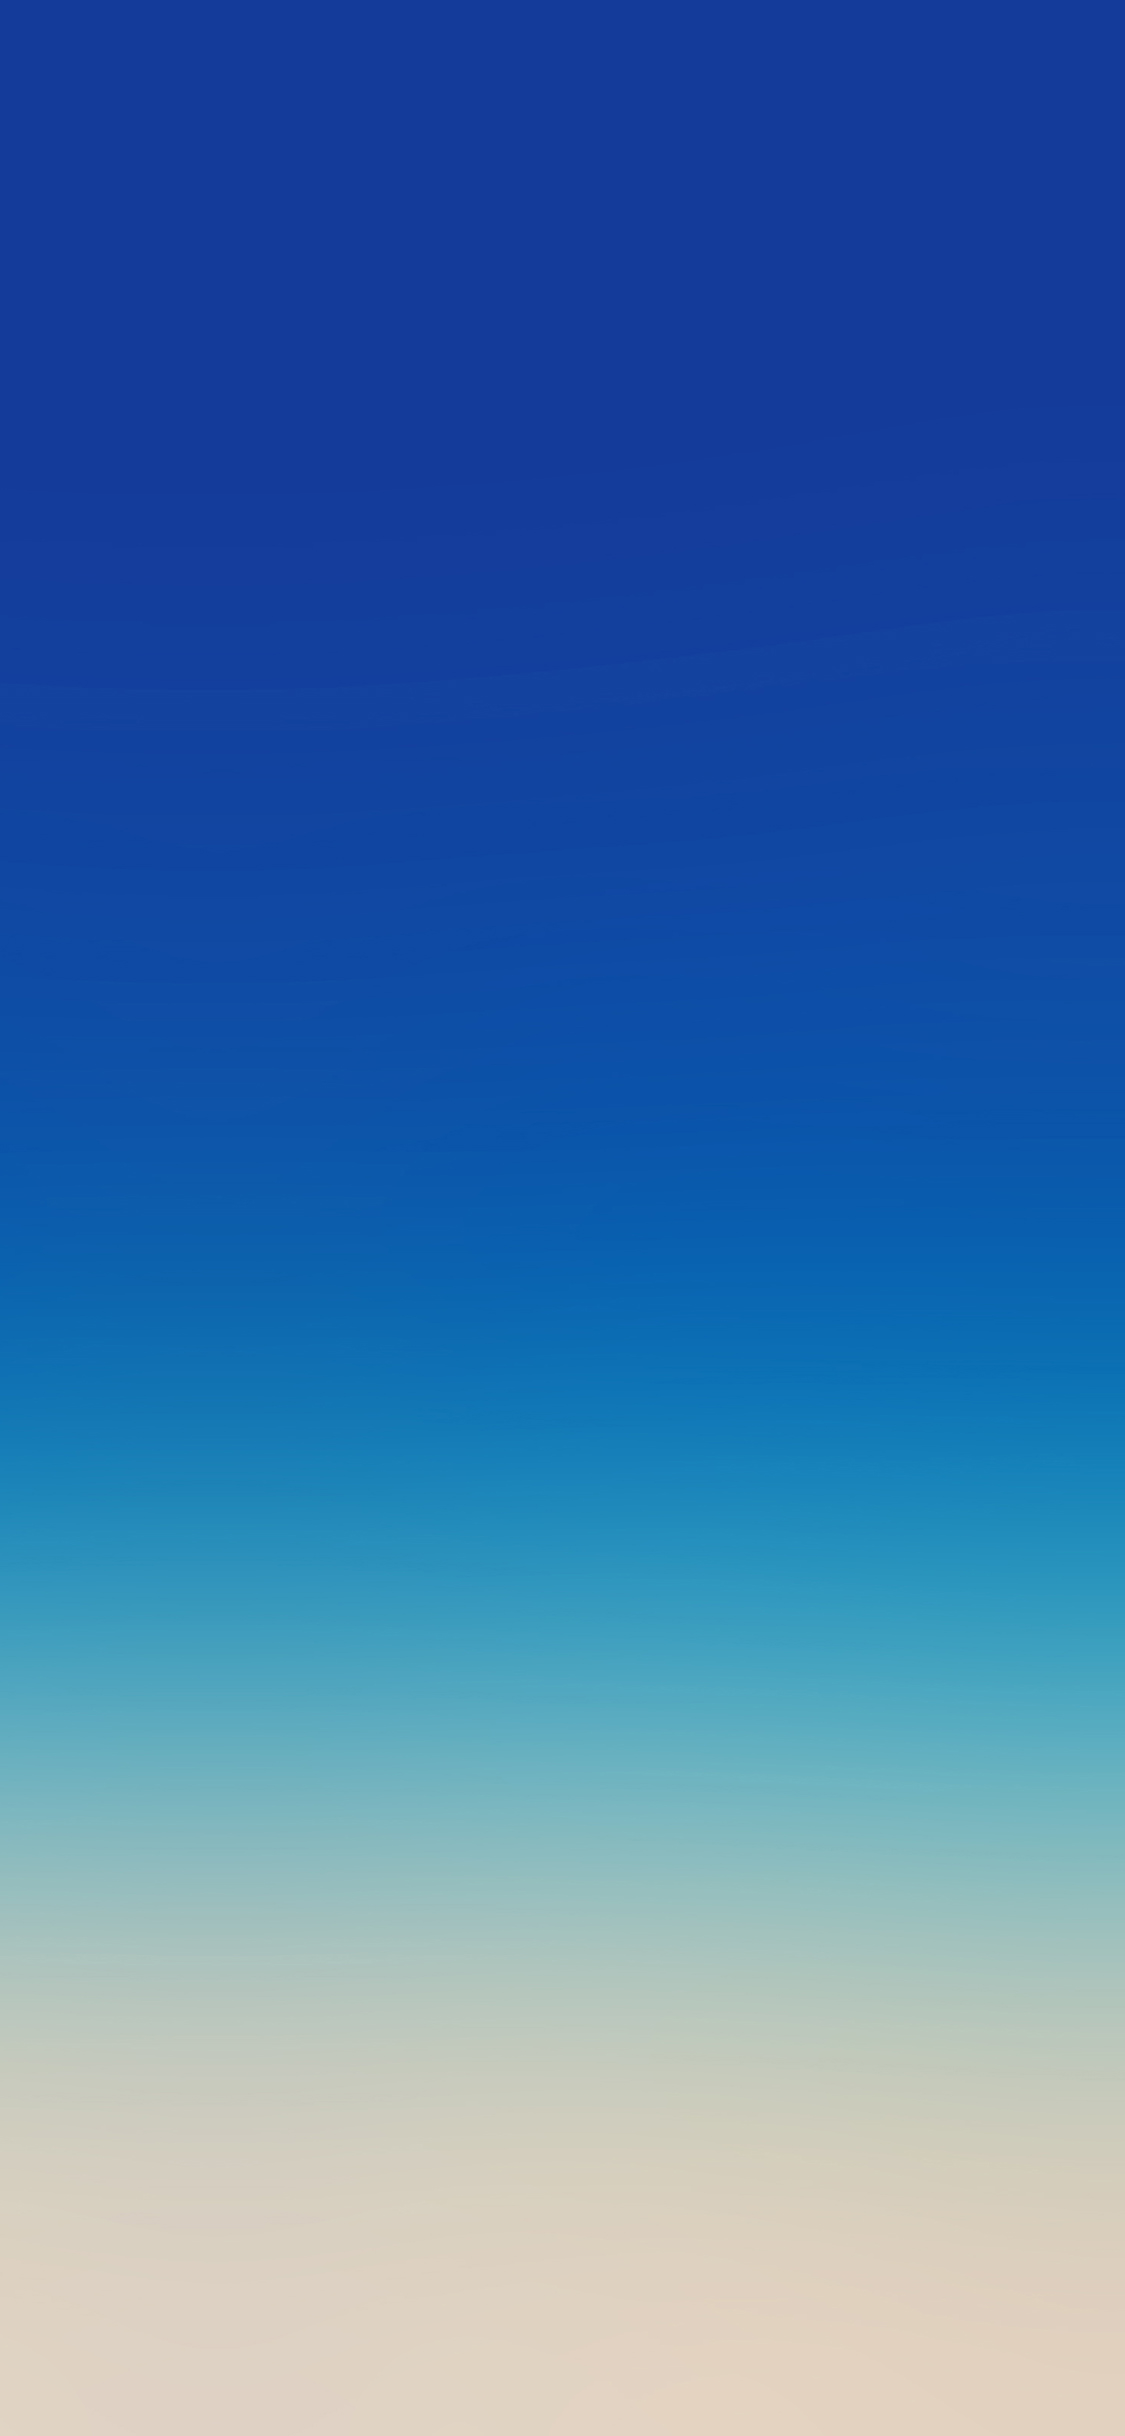 iPhoneXpapers.com-Apple-iPhone-wallpaper-sa08-blue-sky-blue-blur